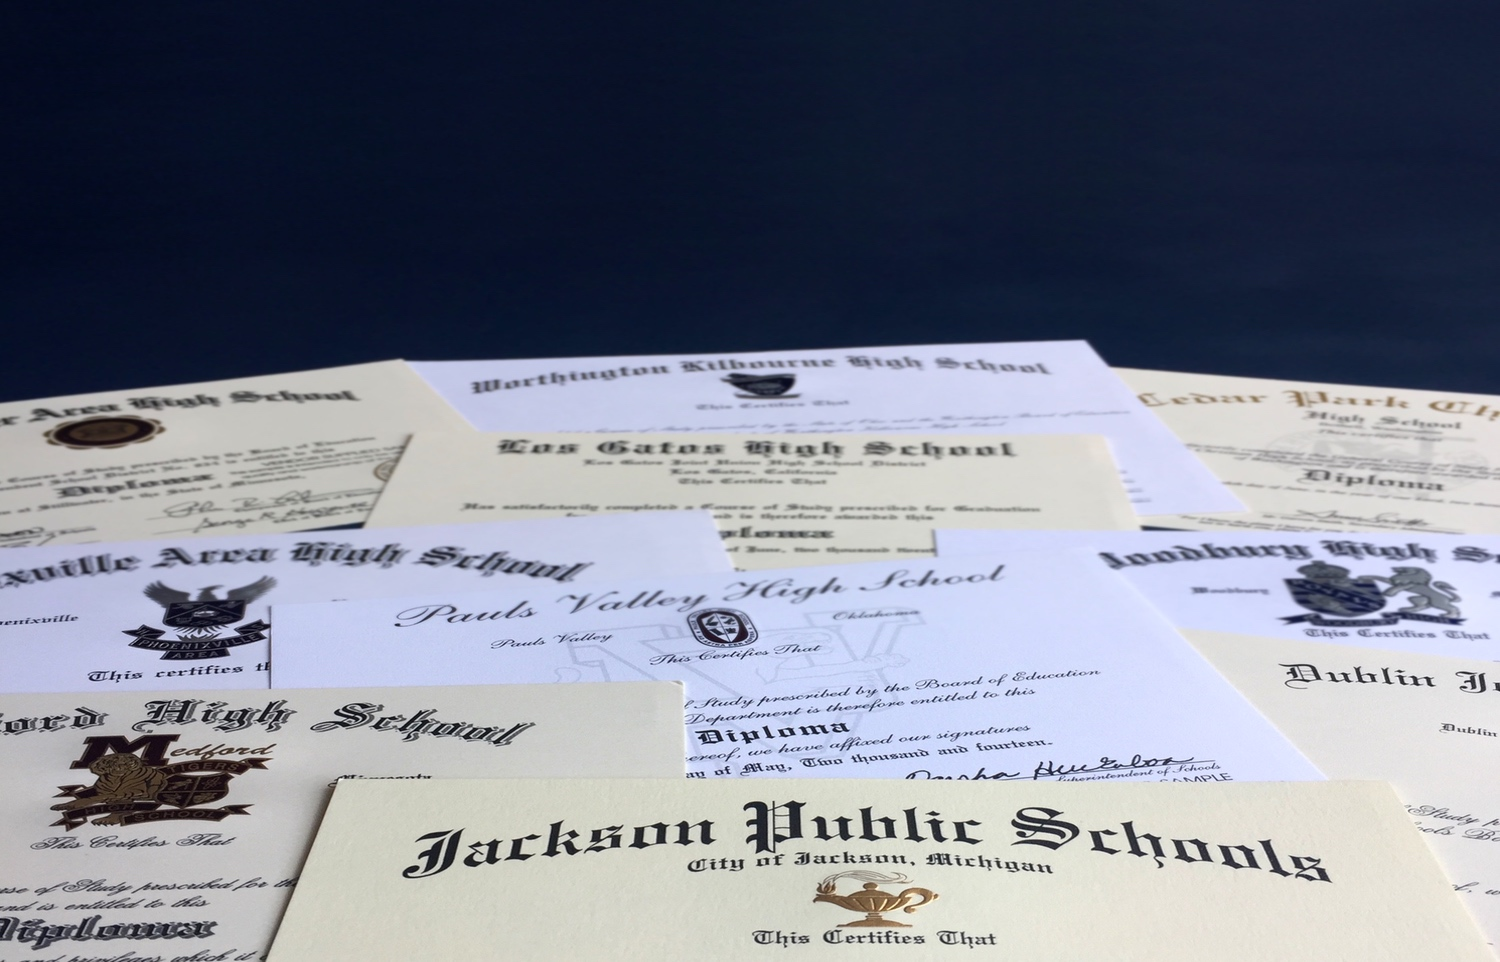 Photo of multiple diplomas scattered